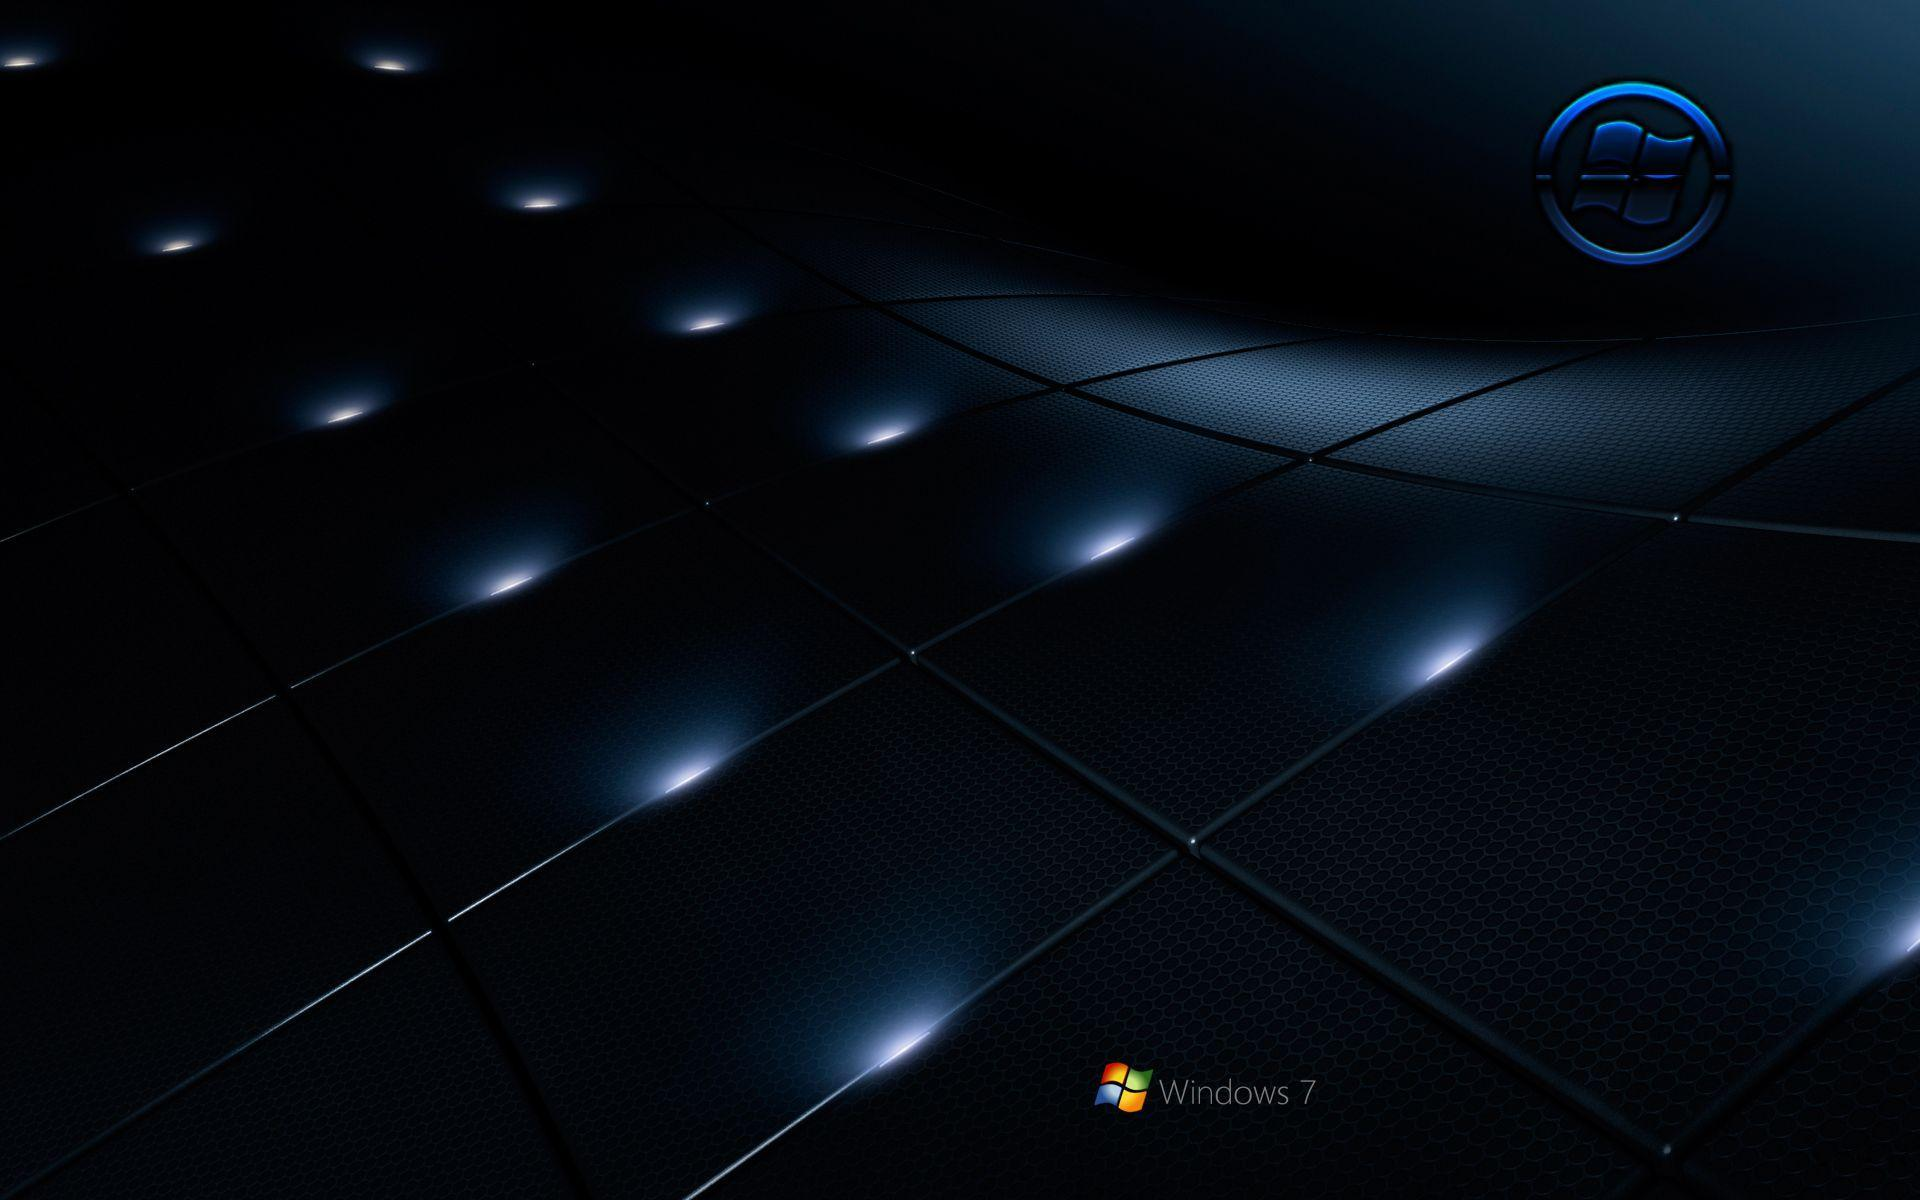 Windows 7 black wallpapers wallpaper cave for Black 3d wallpaper